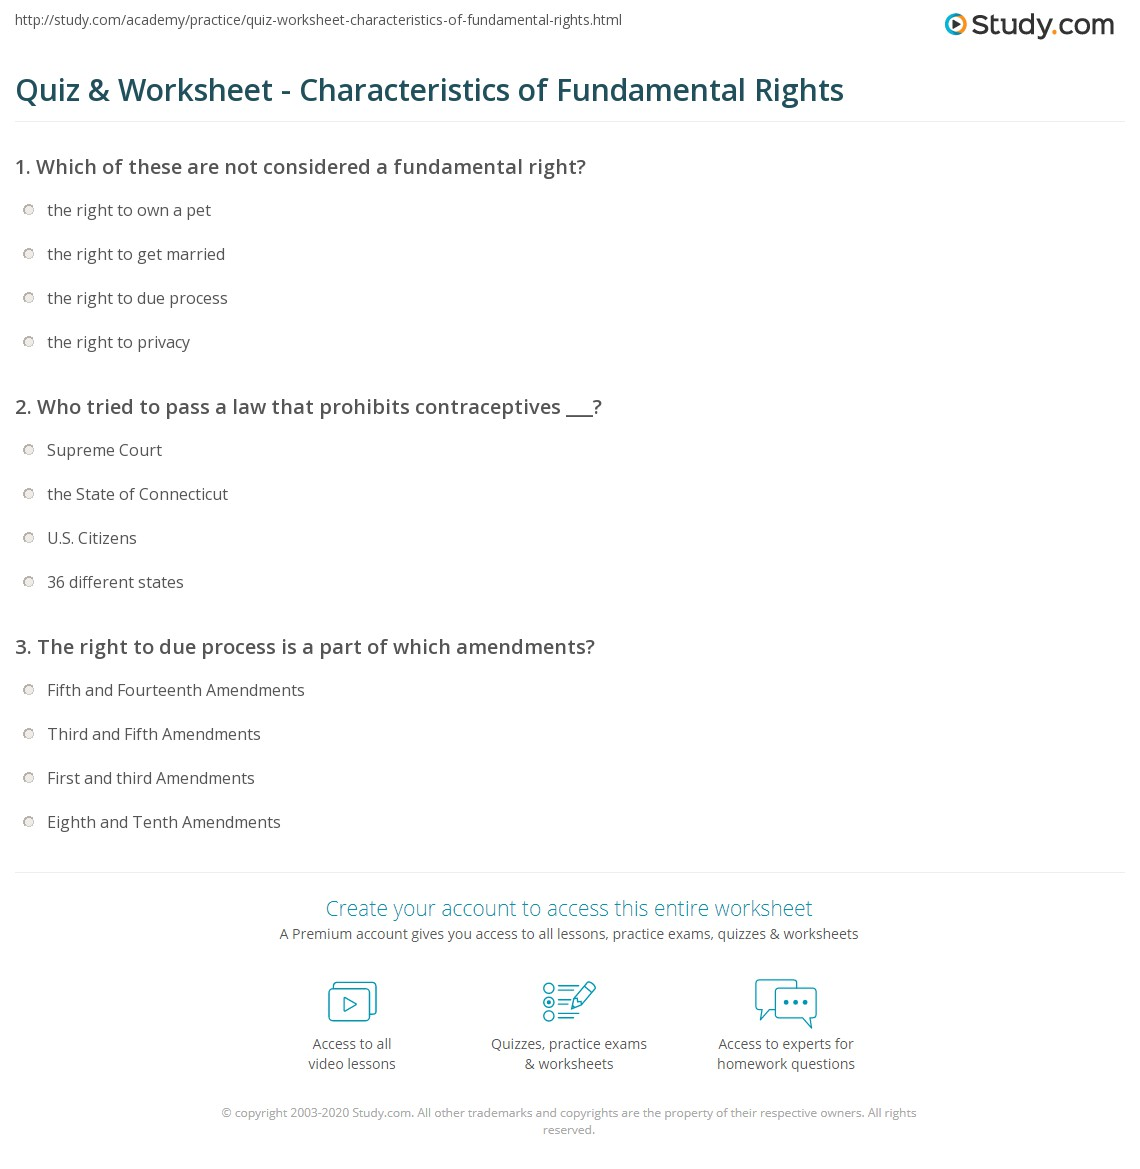 Aldiablosus  Fascinating Quiz Amp Worksheet  Characteristics Of Fundamental Rights  Studycom With Lovely Print What Are Fundamental Rights  Definition Types Amp Features Worksheet With Astonishing Printable Worksheets Th Grade Also Th Grade Grammar Worksheets Printable In Addition Noun Verb And Adjective Worksheets And Worksheets For Ks As Well As Ordinal Numbers Kindergarten Worksheets Additionally Ascending Order Worksheets From Studycom With Aldiablosus  Lovely Quiz Amp Worksheet  Characteristics Of Fundamental Rights  Studycom With Astonishing Print What Are Fundamental Rights  Definition Types Amp Features Worksheet And Fascinating Printable Worksheets Th Grade Also Th Grade Grammar Worksheets Printable In Addition Noun Verb And Adjective Worksheets From Studycom